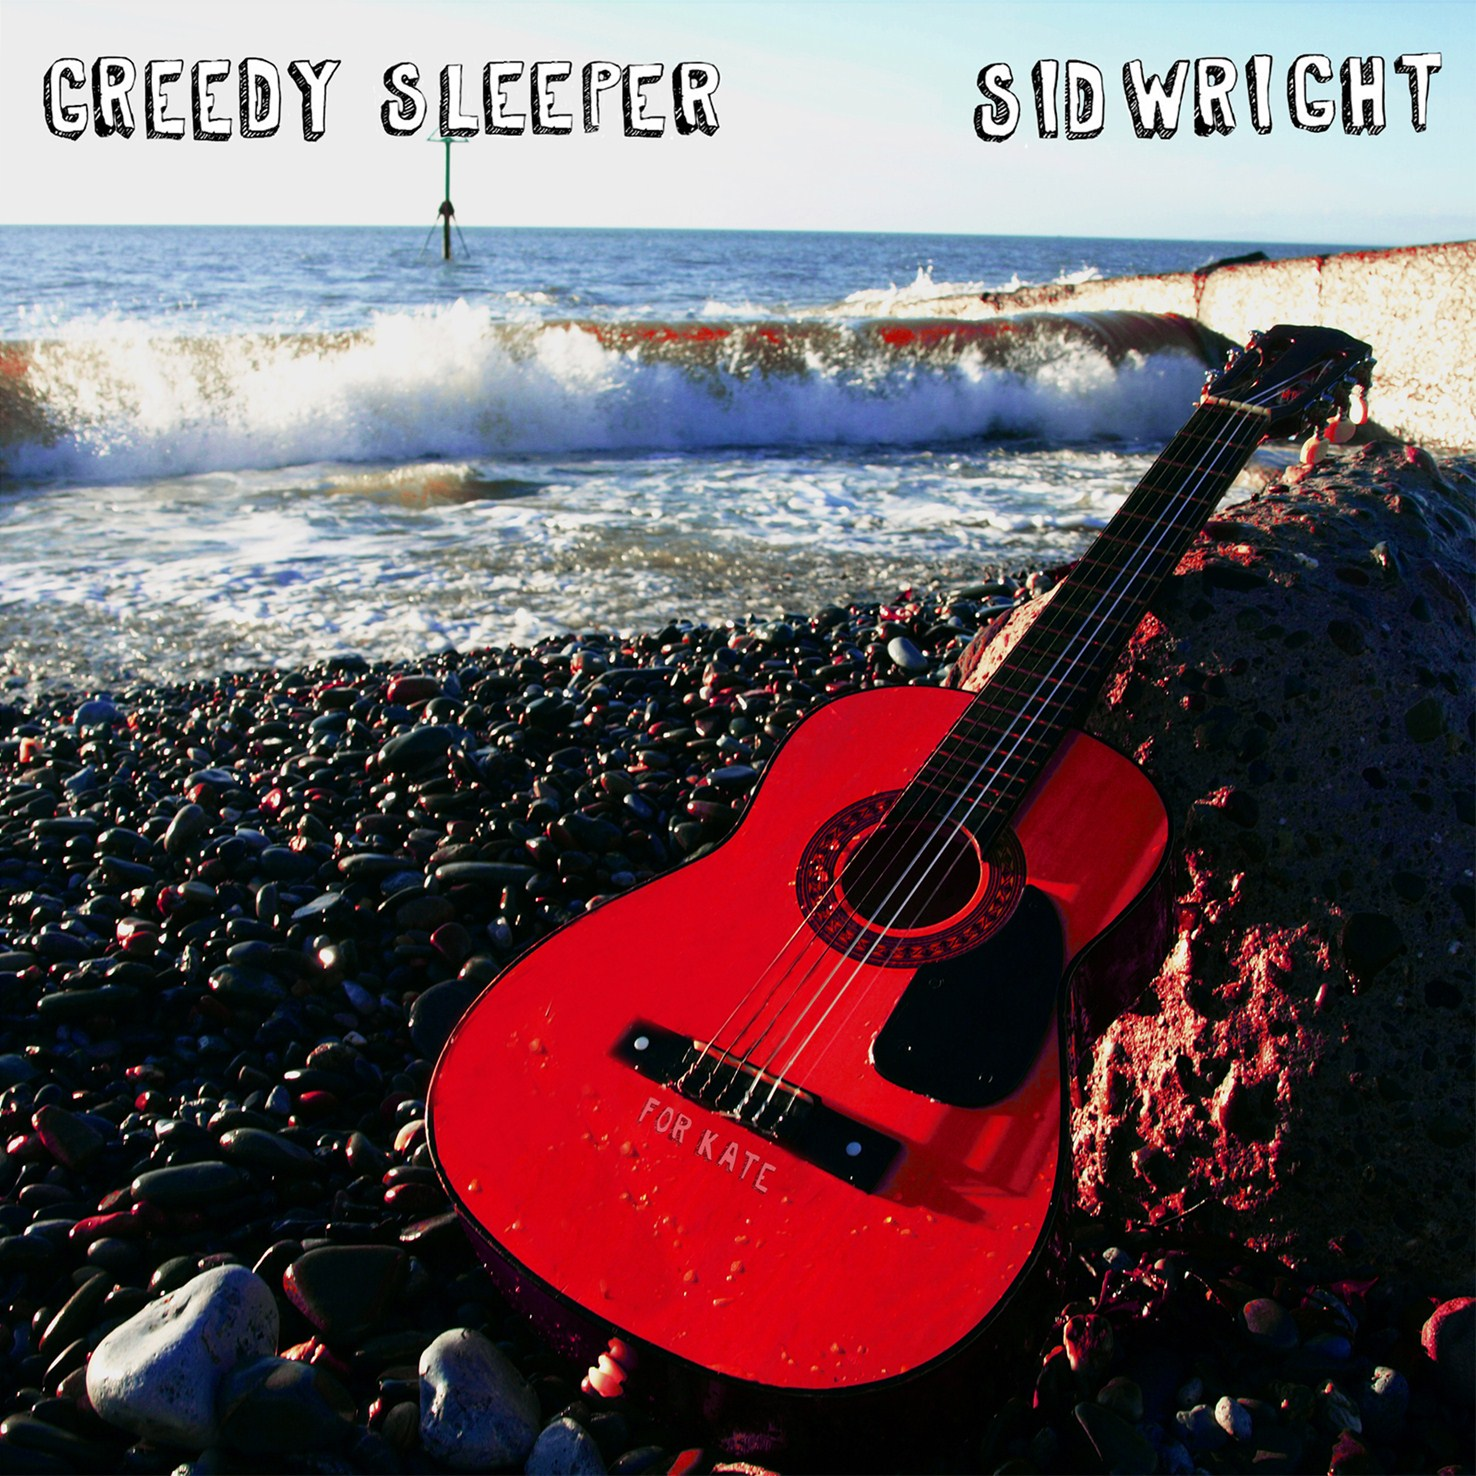 Greedy Sleeper album cover by Sid Wright sidwright.co.uk